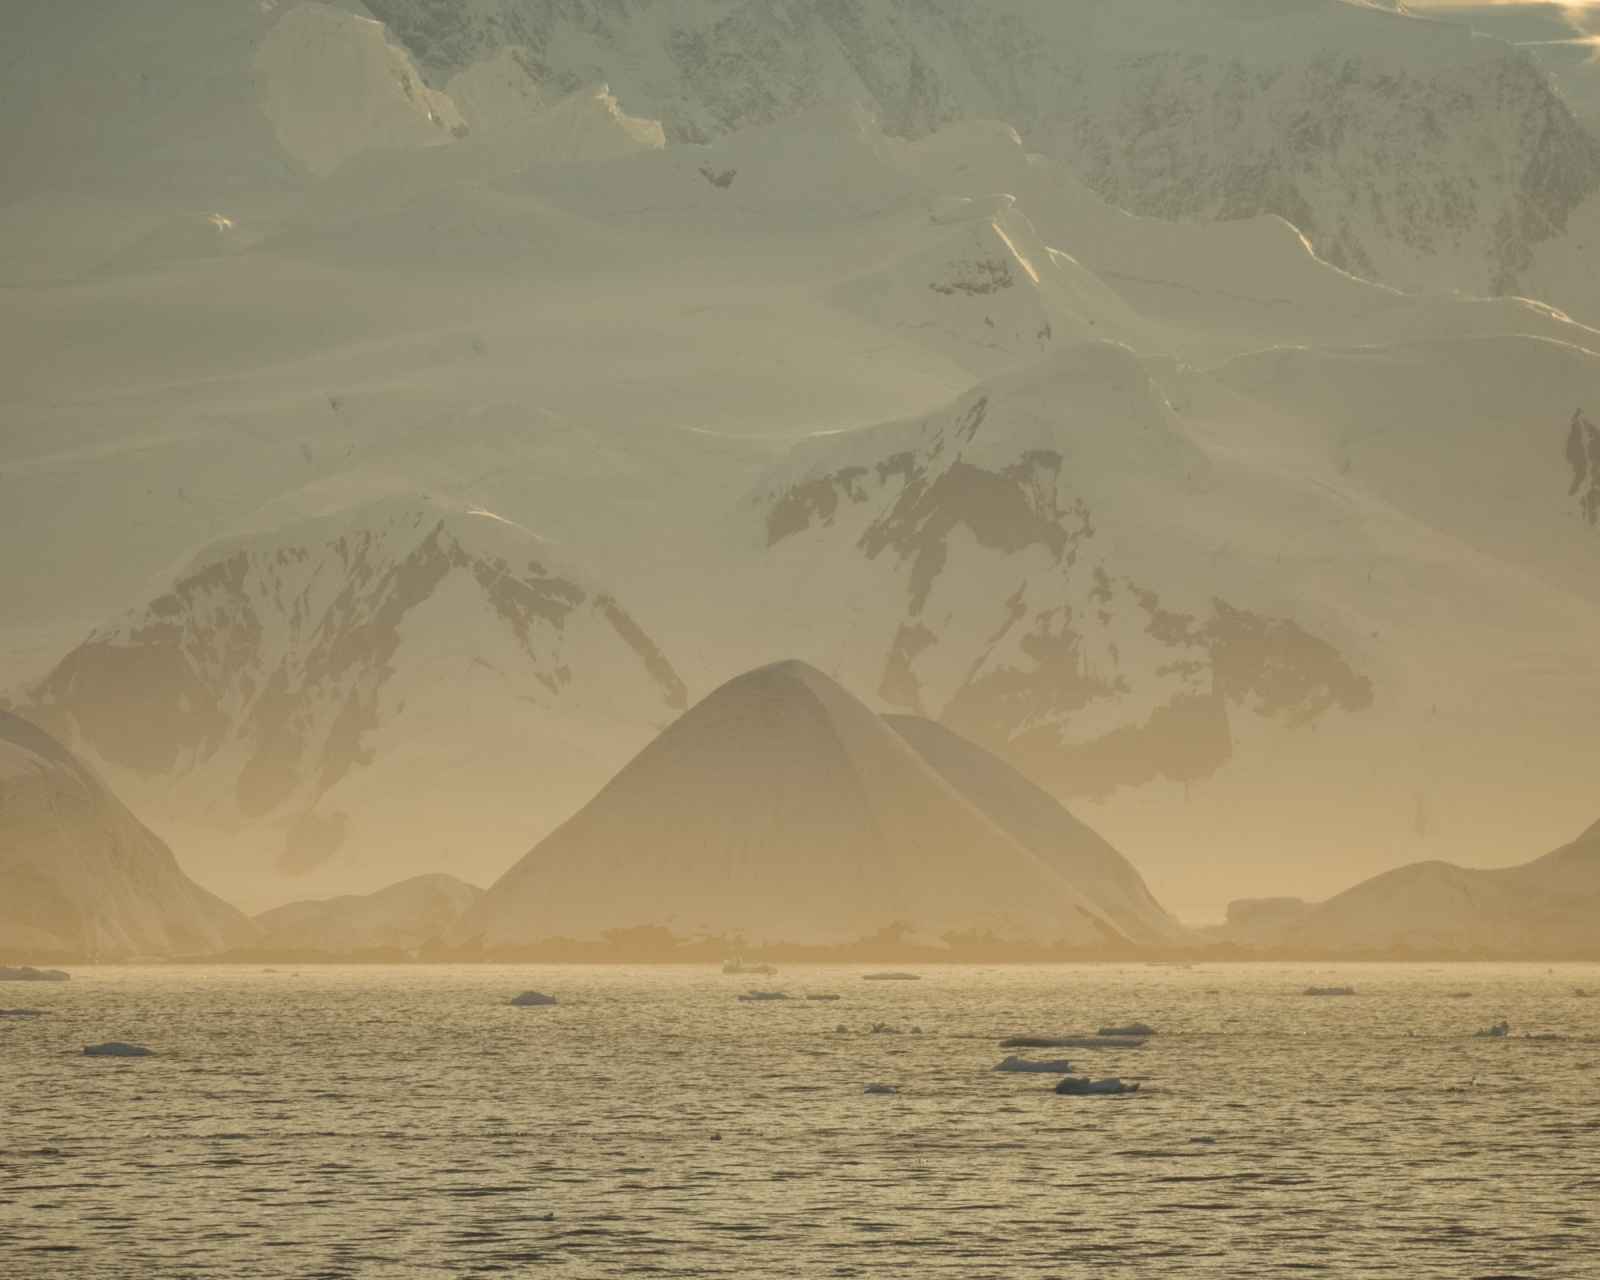 Sunrise in the Lemaire Channel, Antarctica.